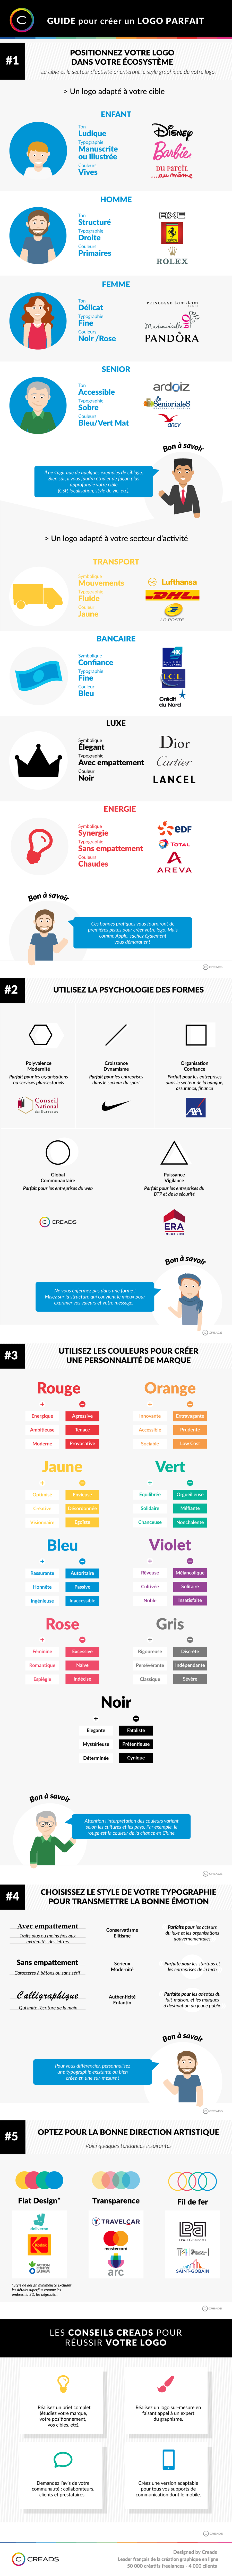 Creads_Infographie_LogoParfait_1200.png